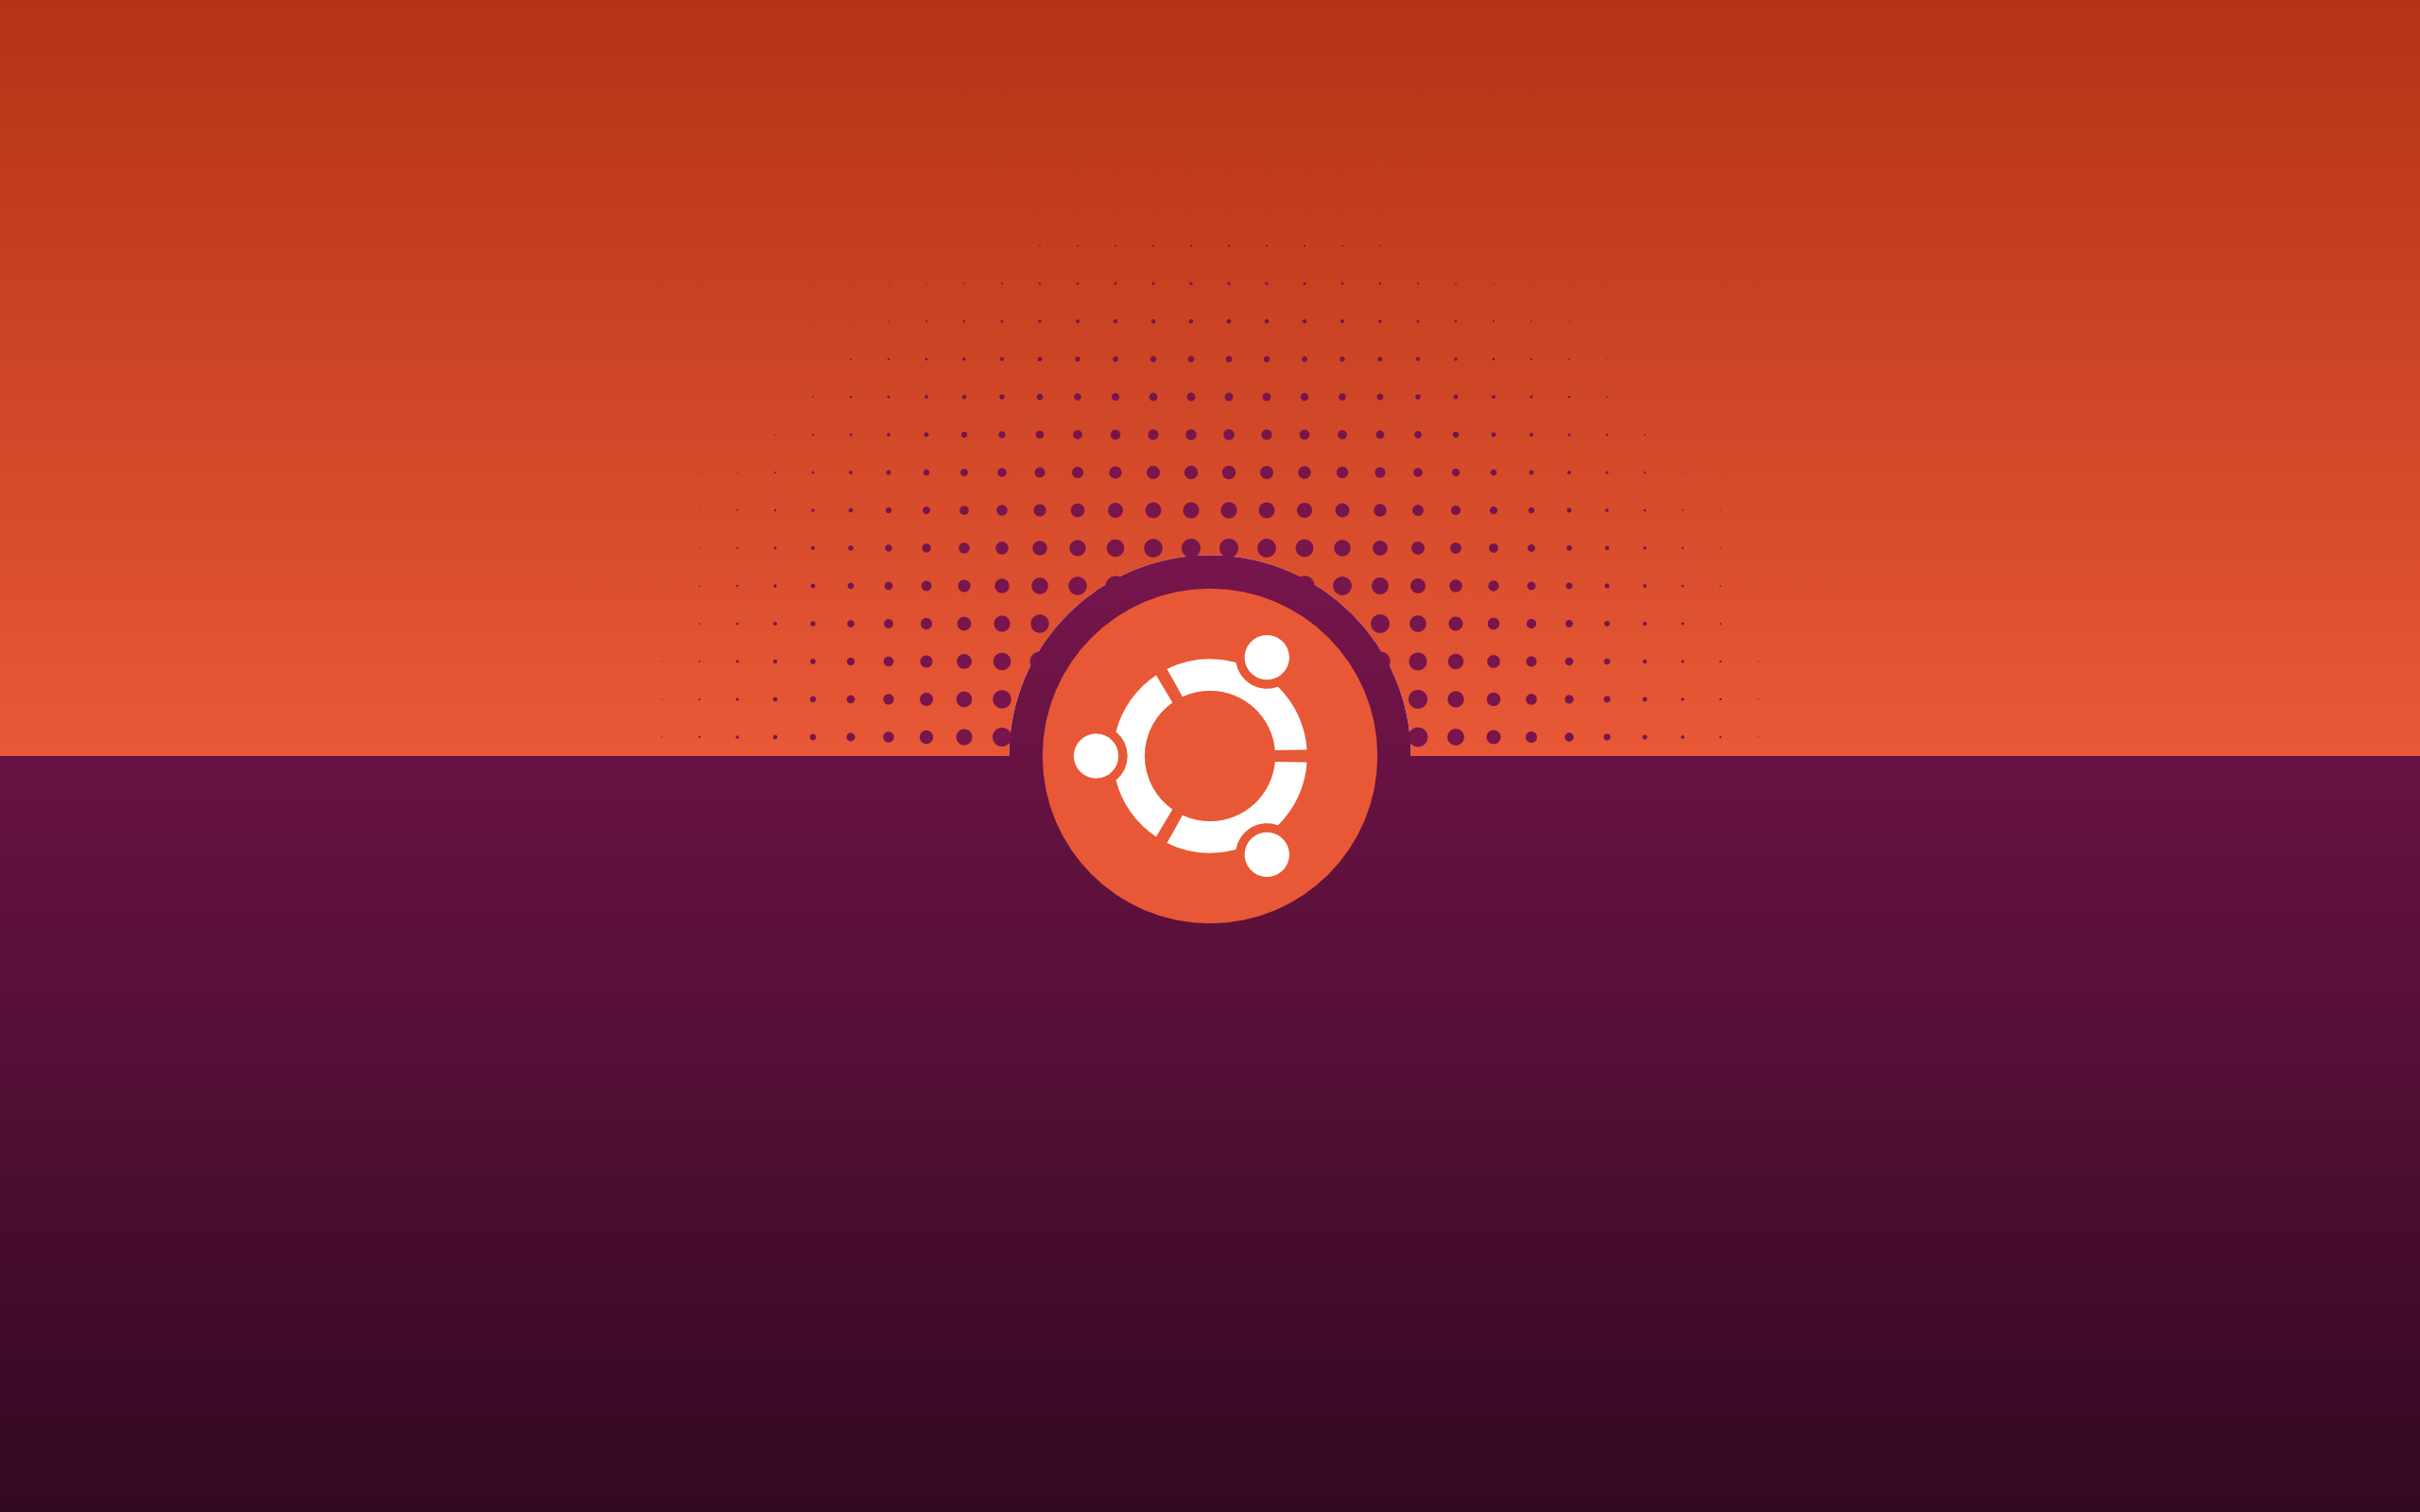 High-quality Ubuntu Background Images